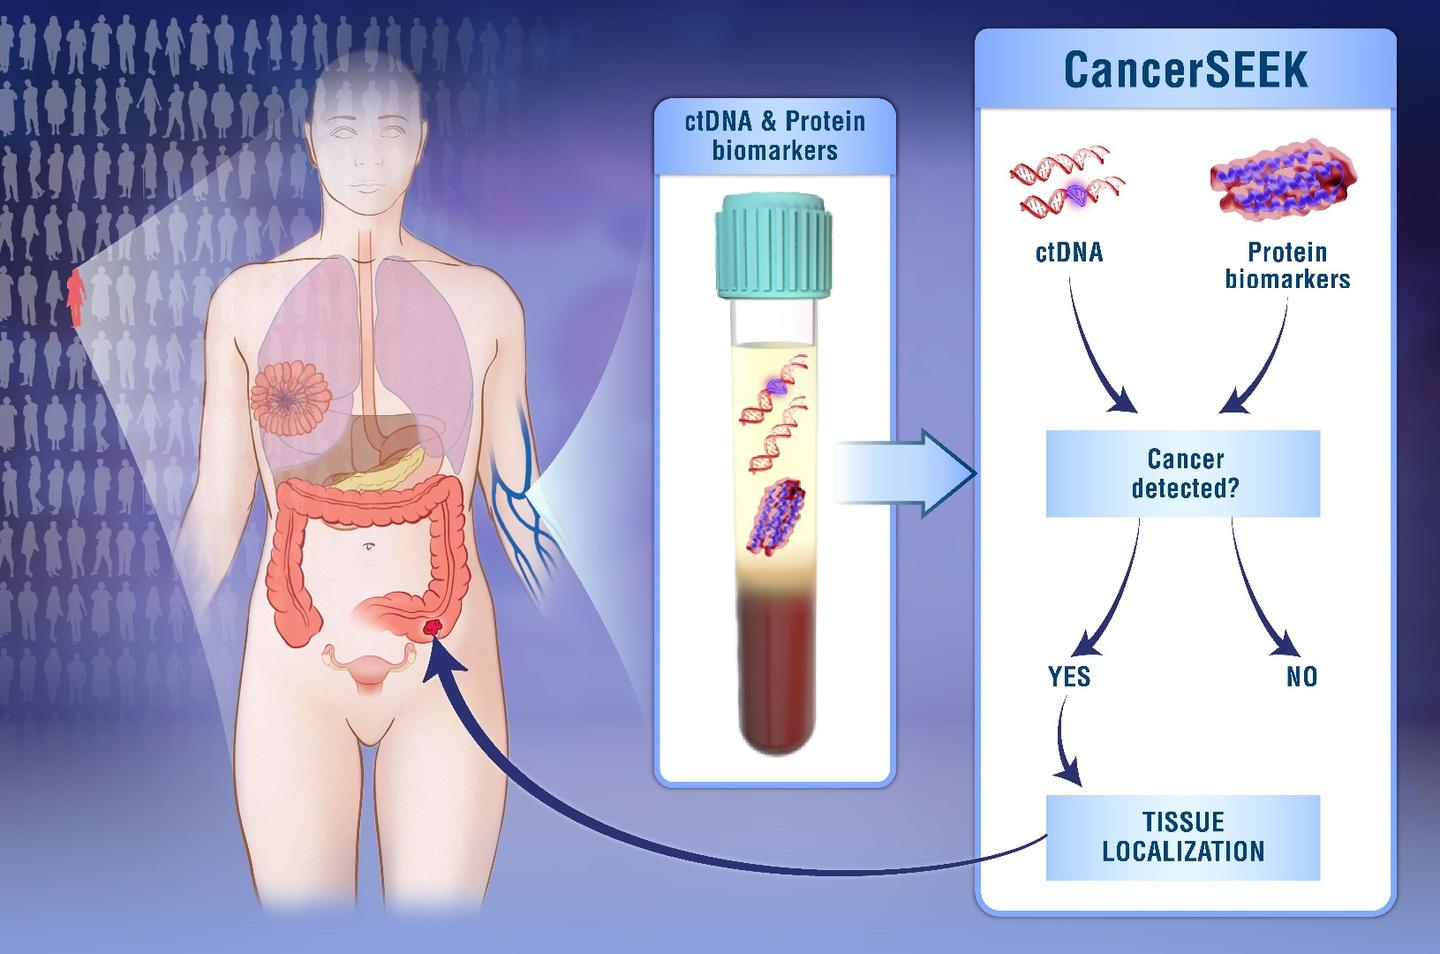 The blood test tracks two different kinds of biomarkers to detect eight types of cancer